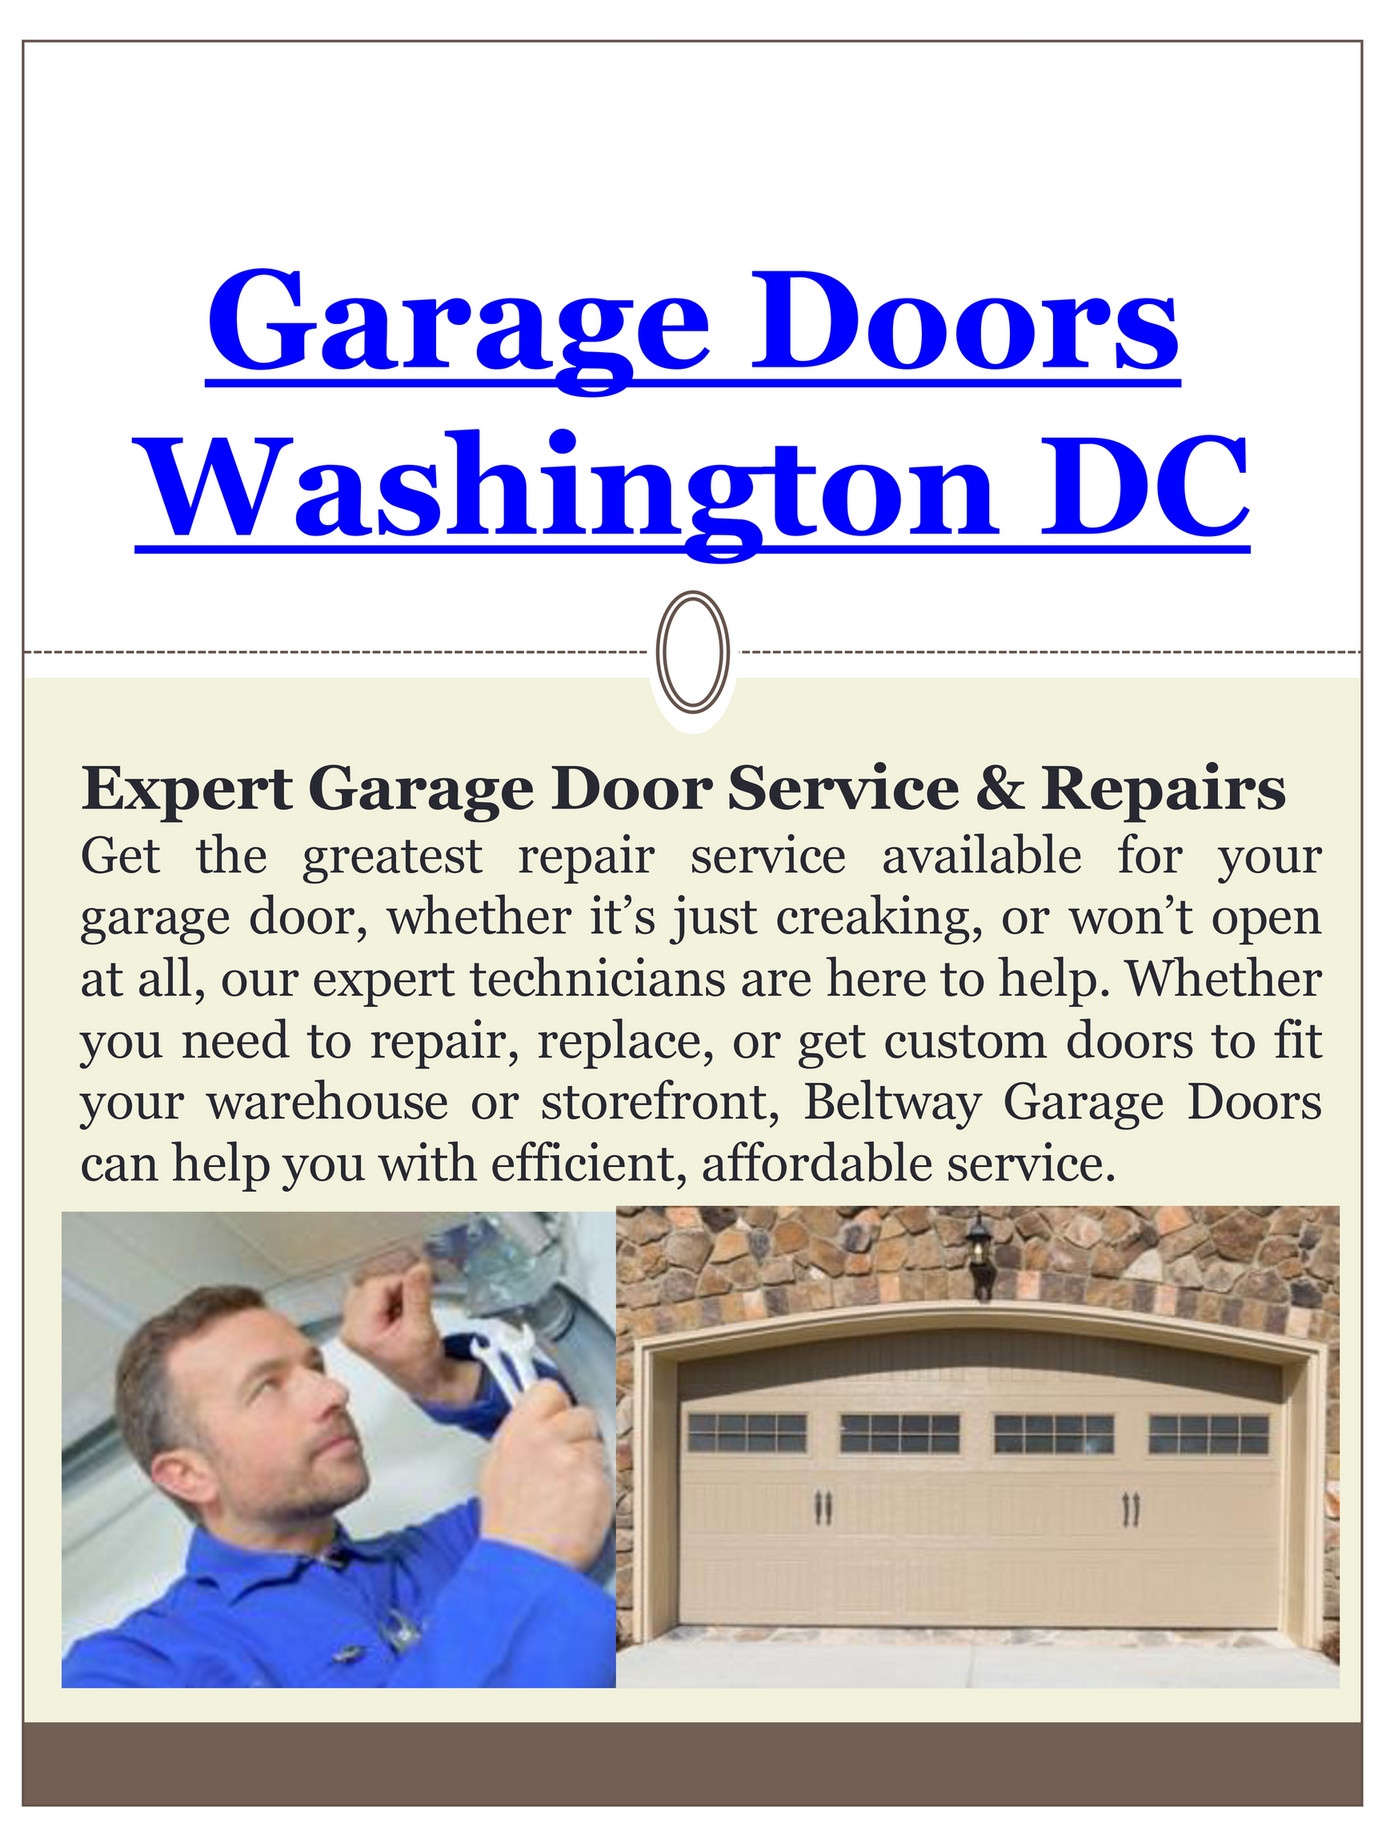 Garage Doors Dc Garage Door Replacement Washington Dc Page 1